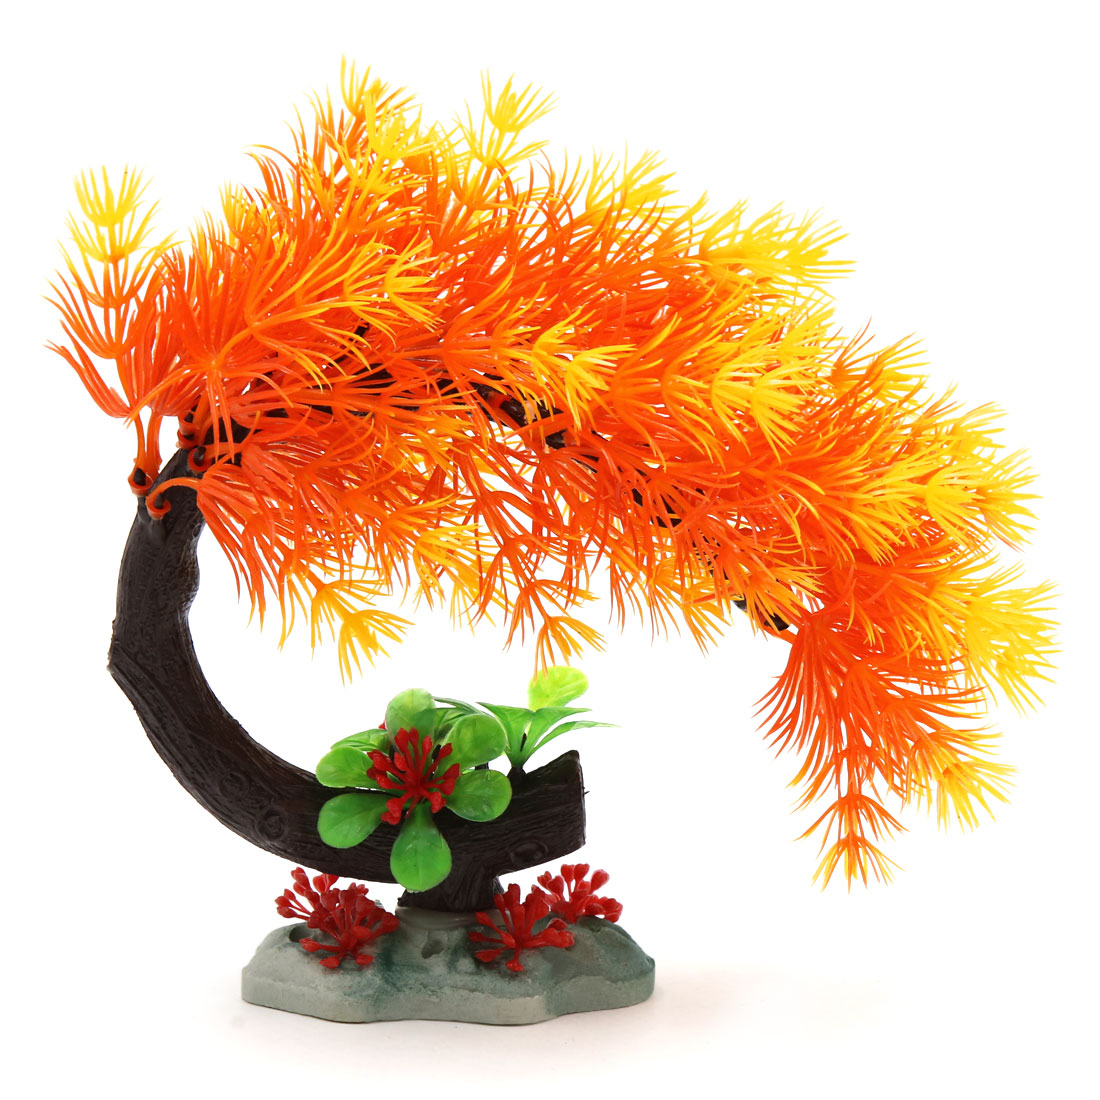 Orange Plastic Plant Aquarium Fish Betta Tank Landscape Decoration Home Decor